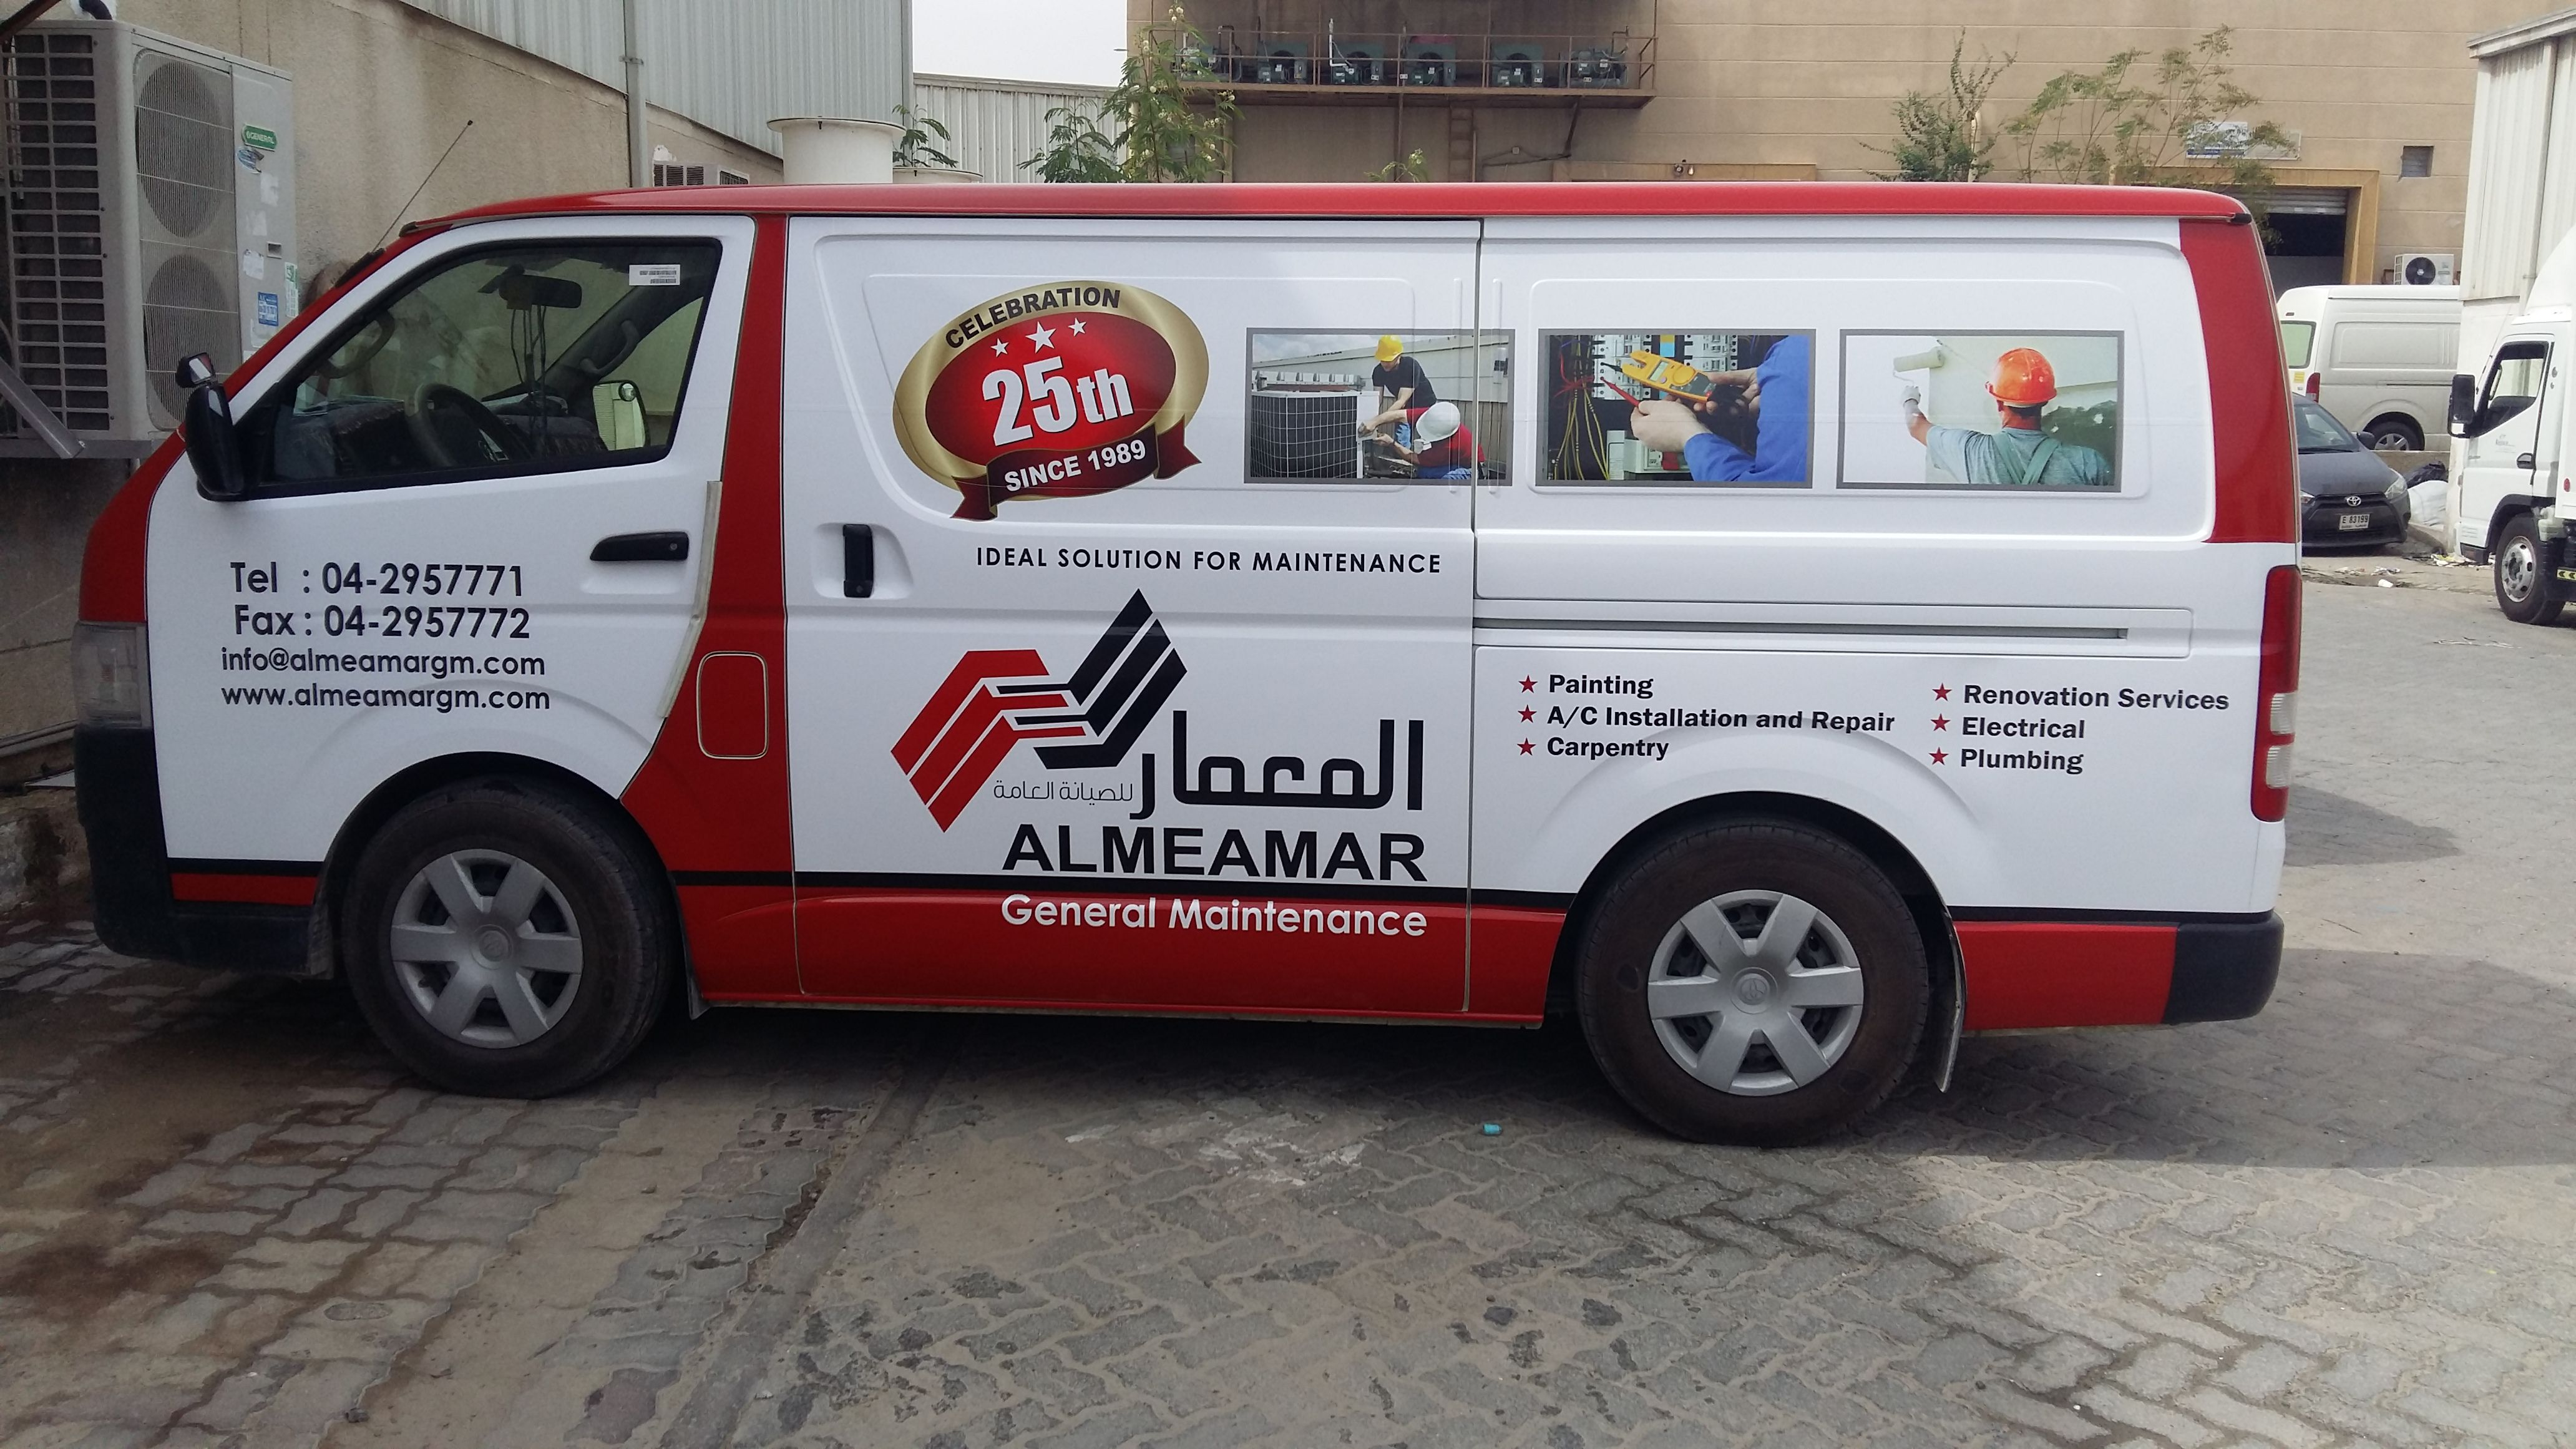 Vehicle Branding Car Stickers Bus Wrapping Vehicle Advertisement In Dubai Car Brands Car Stickers Car Graphics [ 2322 x 4128 Pixel ]